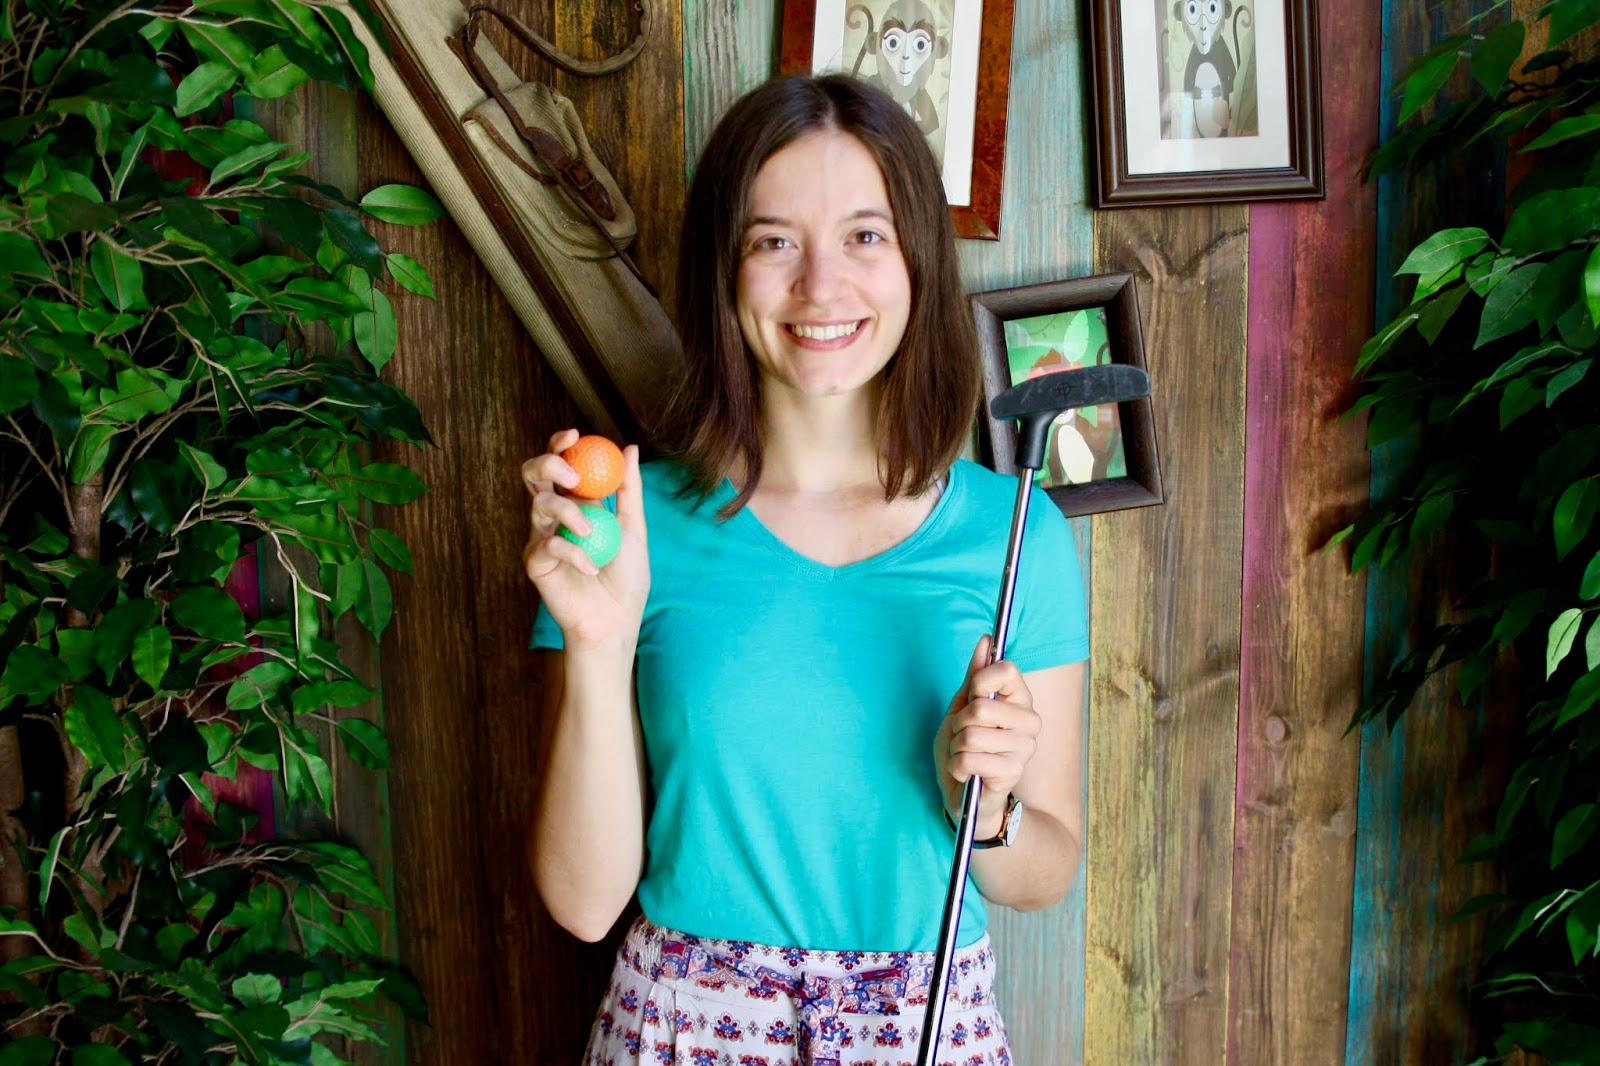 Abbey, holding a golf club and two golfballs, stands in front of a jungle themed backdrop at Treetop Adventure Golf, Leicester